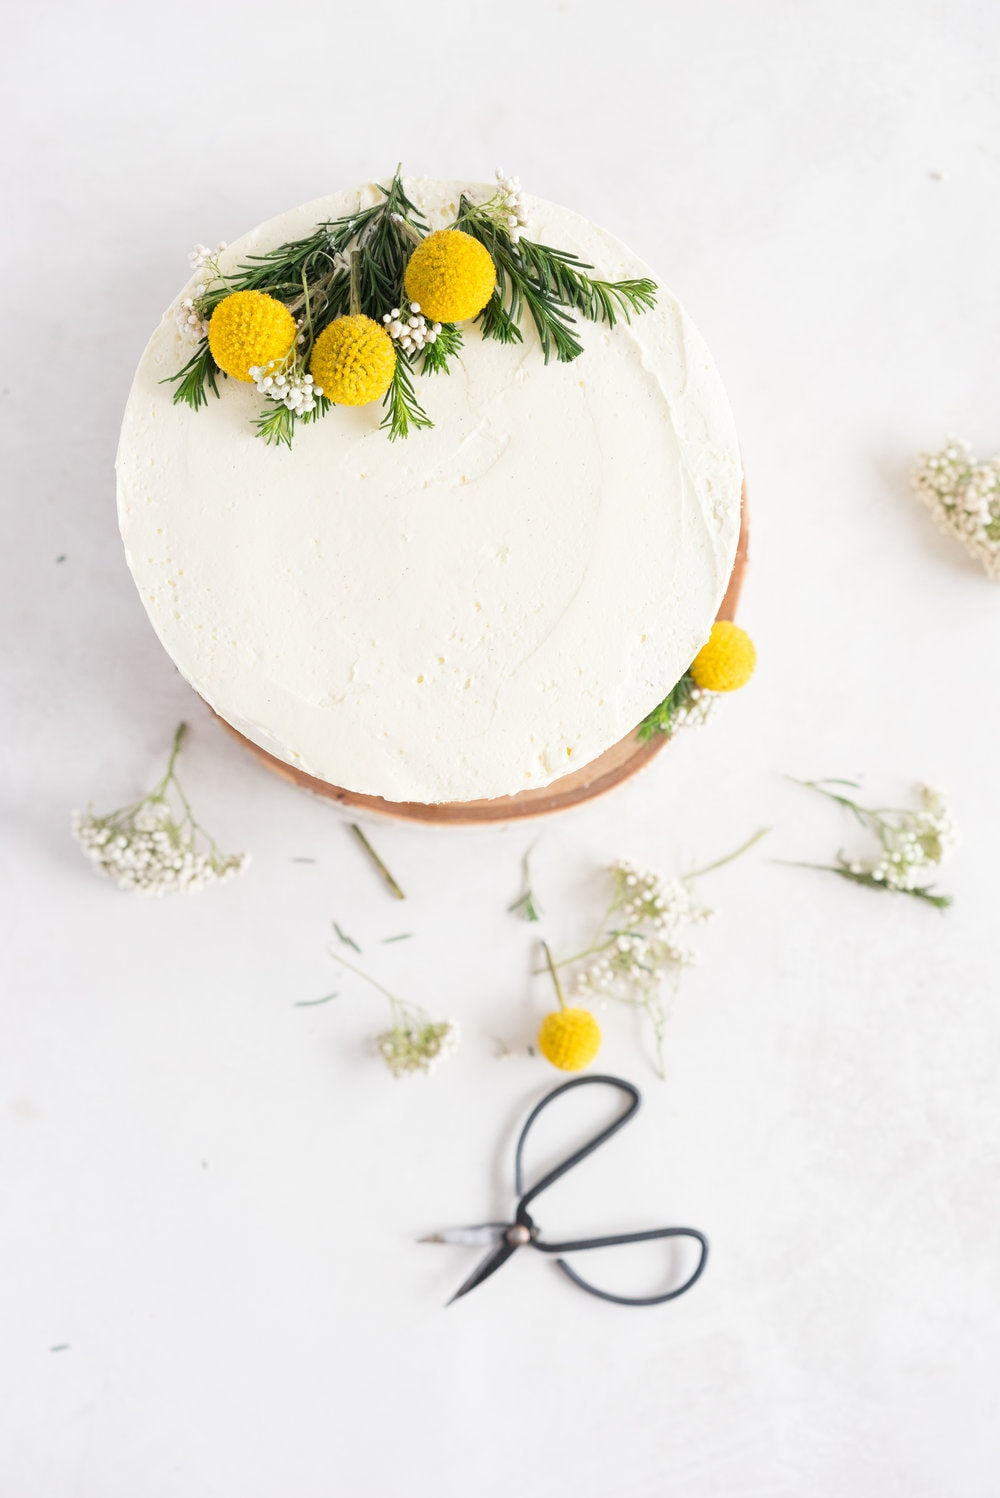 Earl Grey Cake with Raspberry Filling and Vanilla German Buttercream - A delicate earl grey infused cake, filled with a tart raspberry filling, and finished with a creamy vanilla bean german buttercream